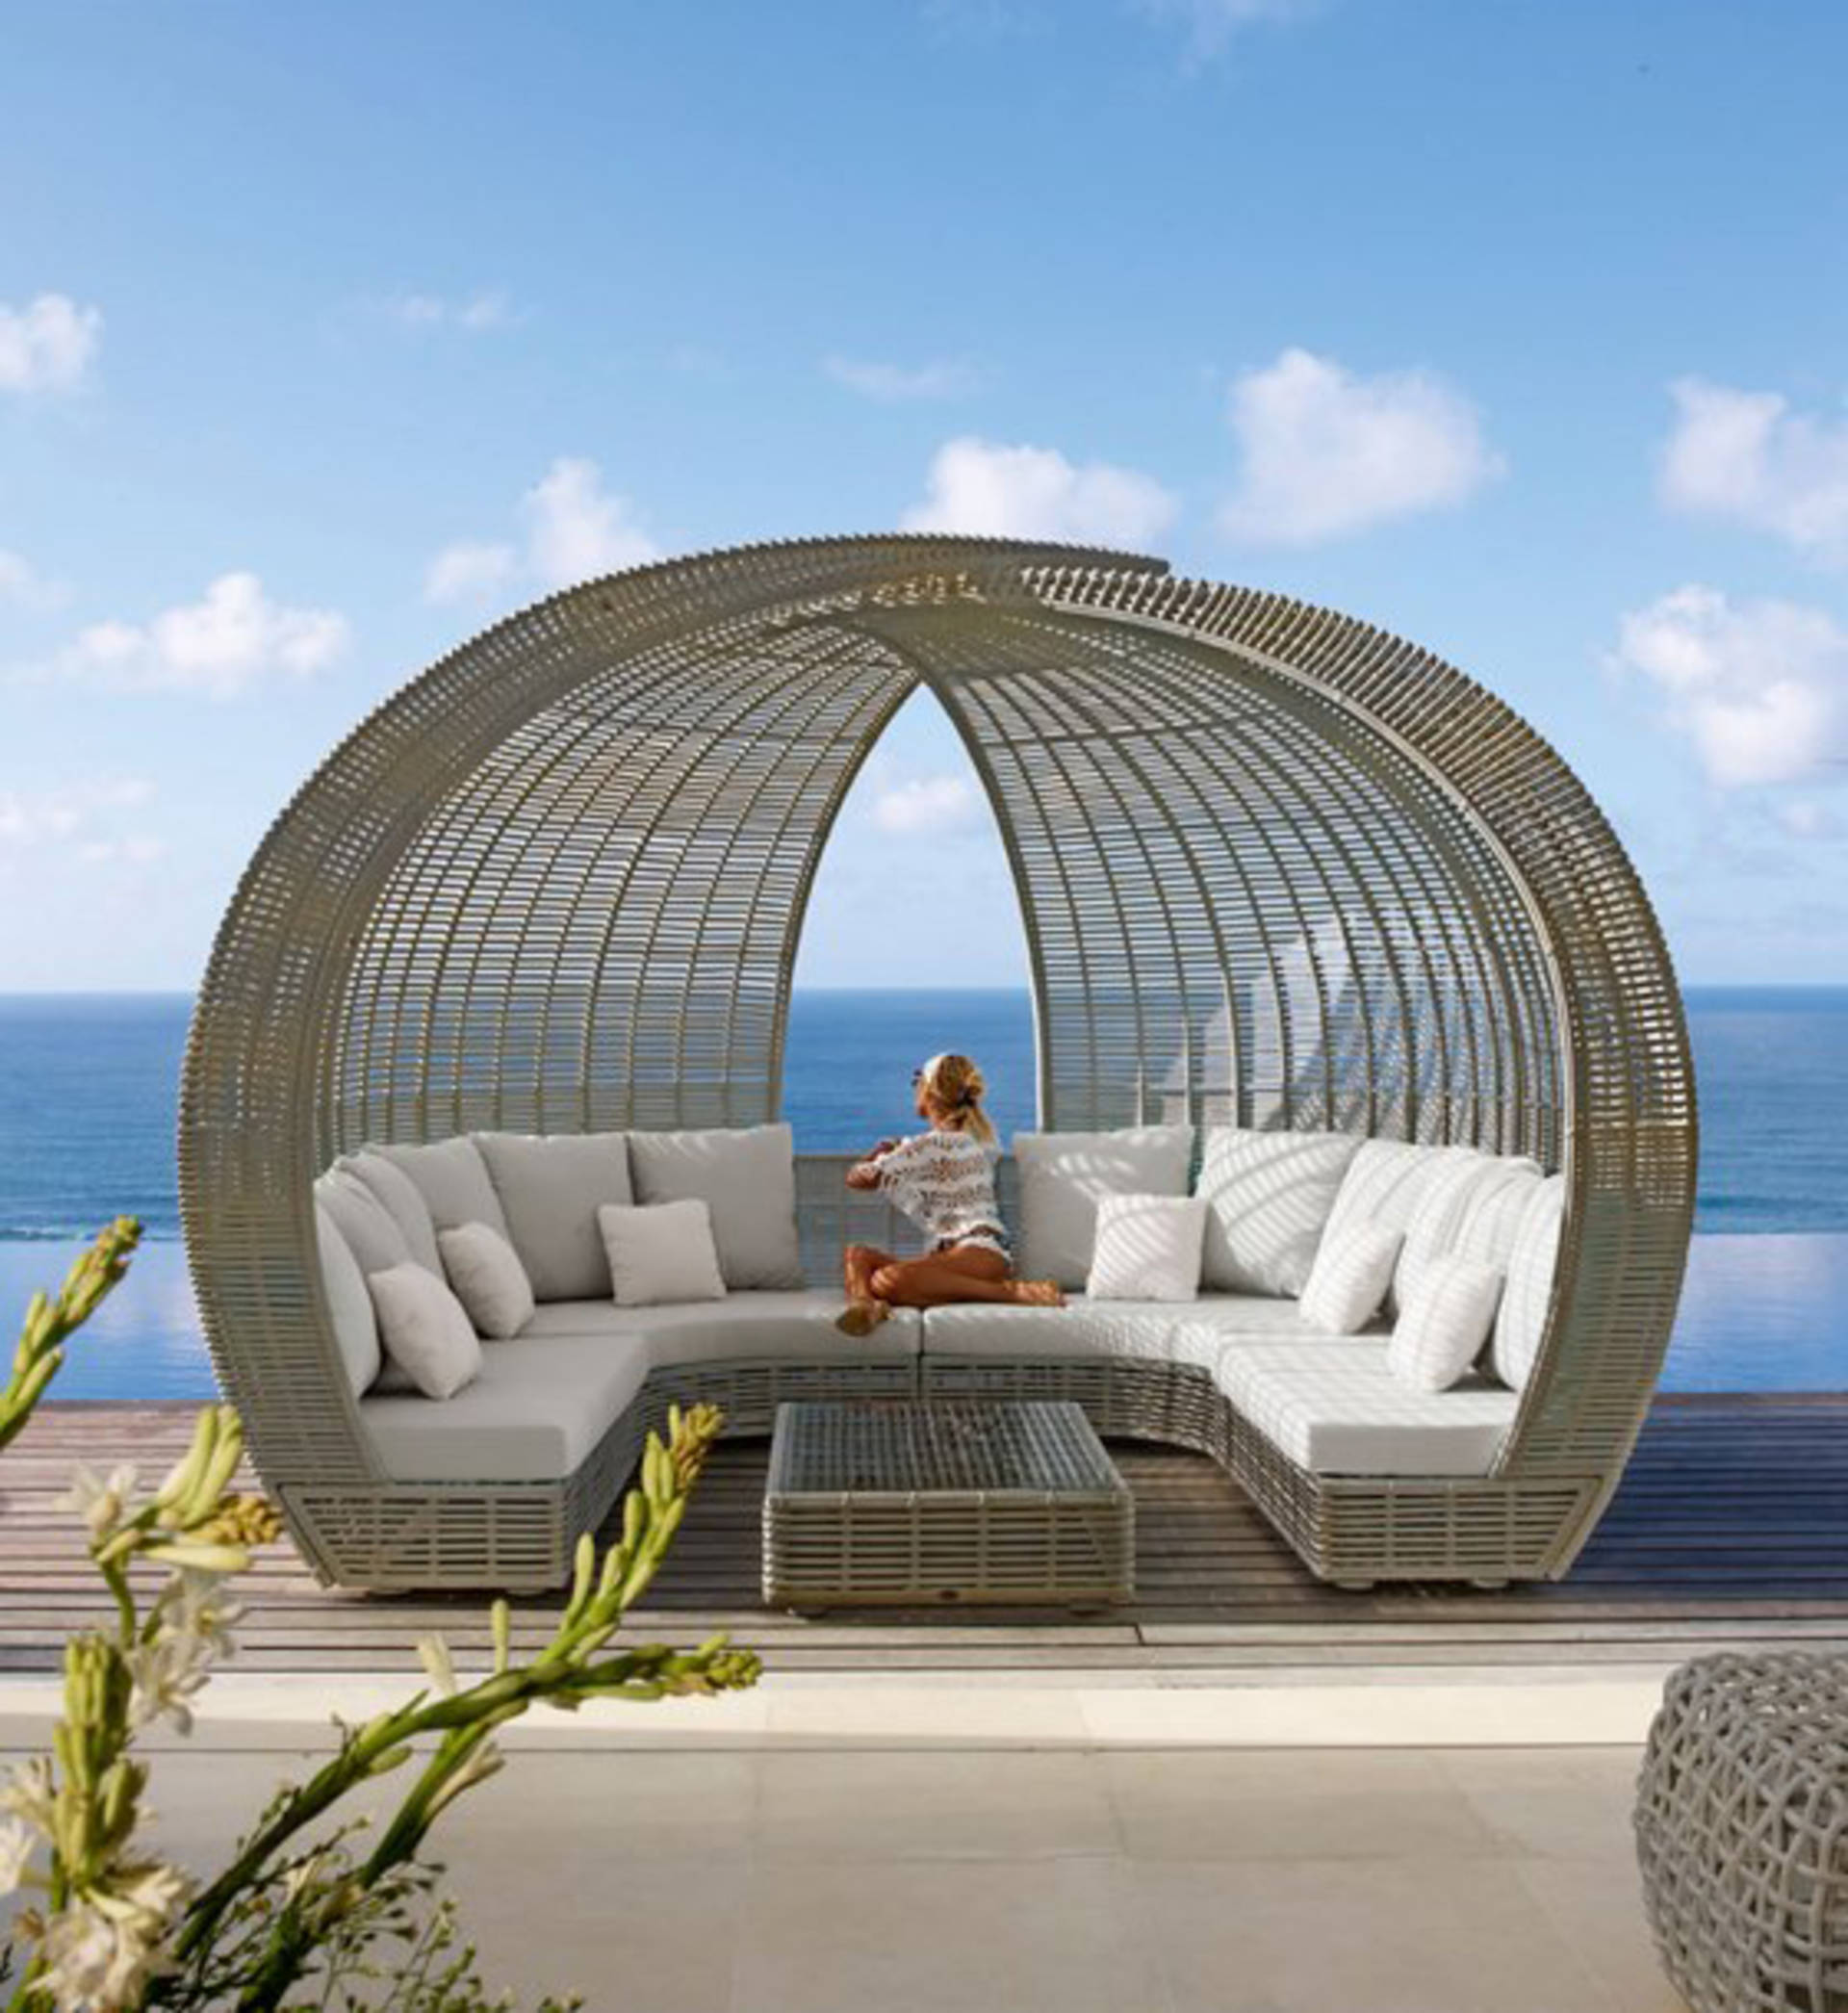 Series of Luxury Outdoor Furniture by Skyline Design Home Reviews